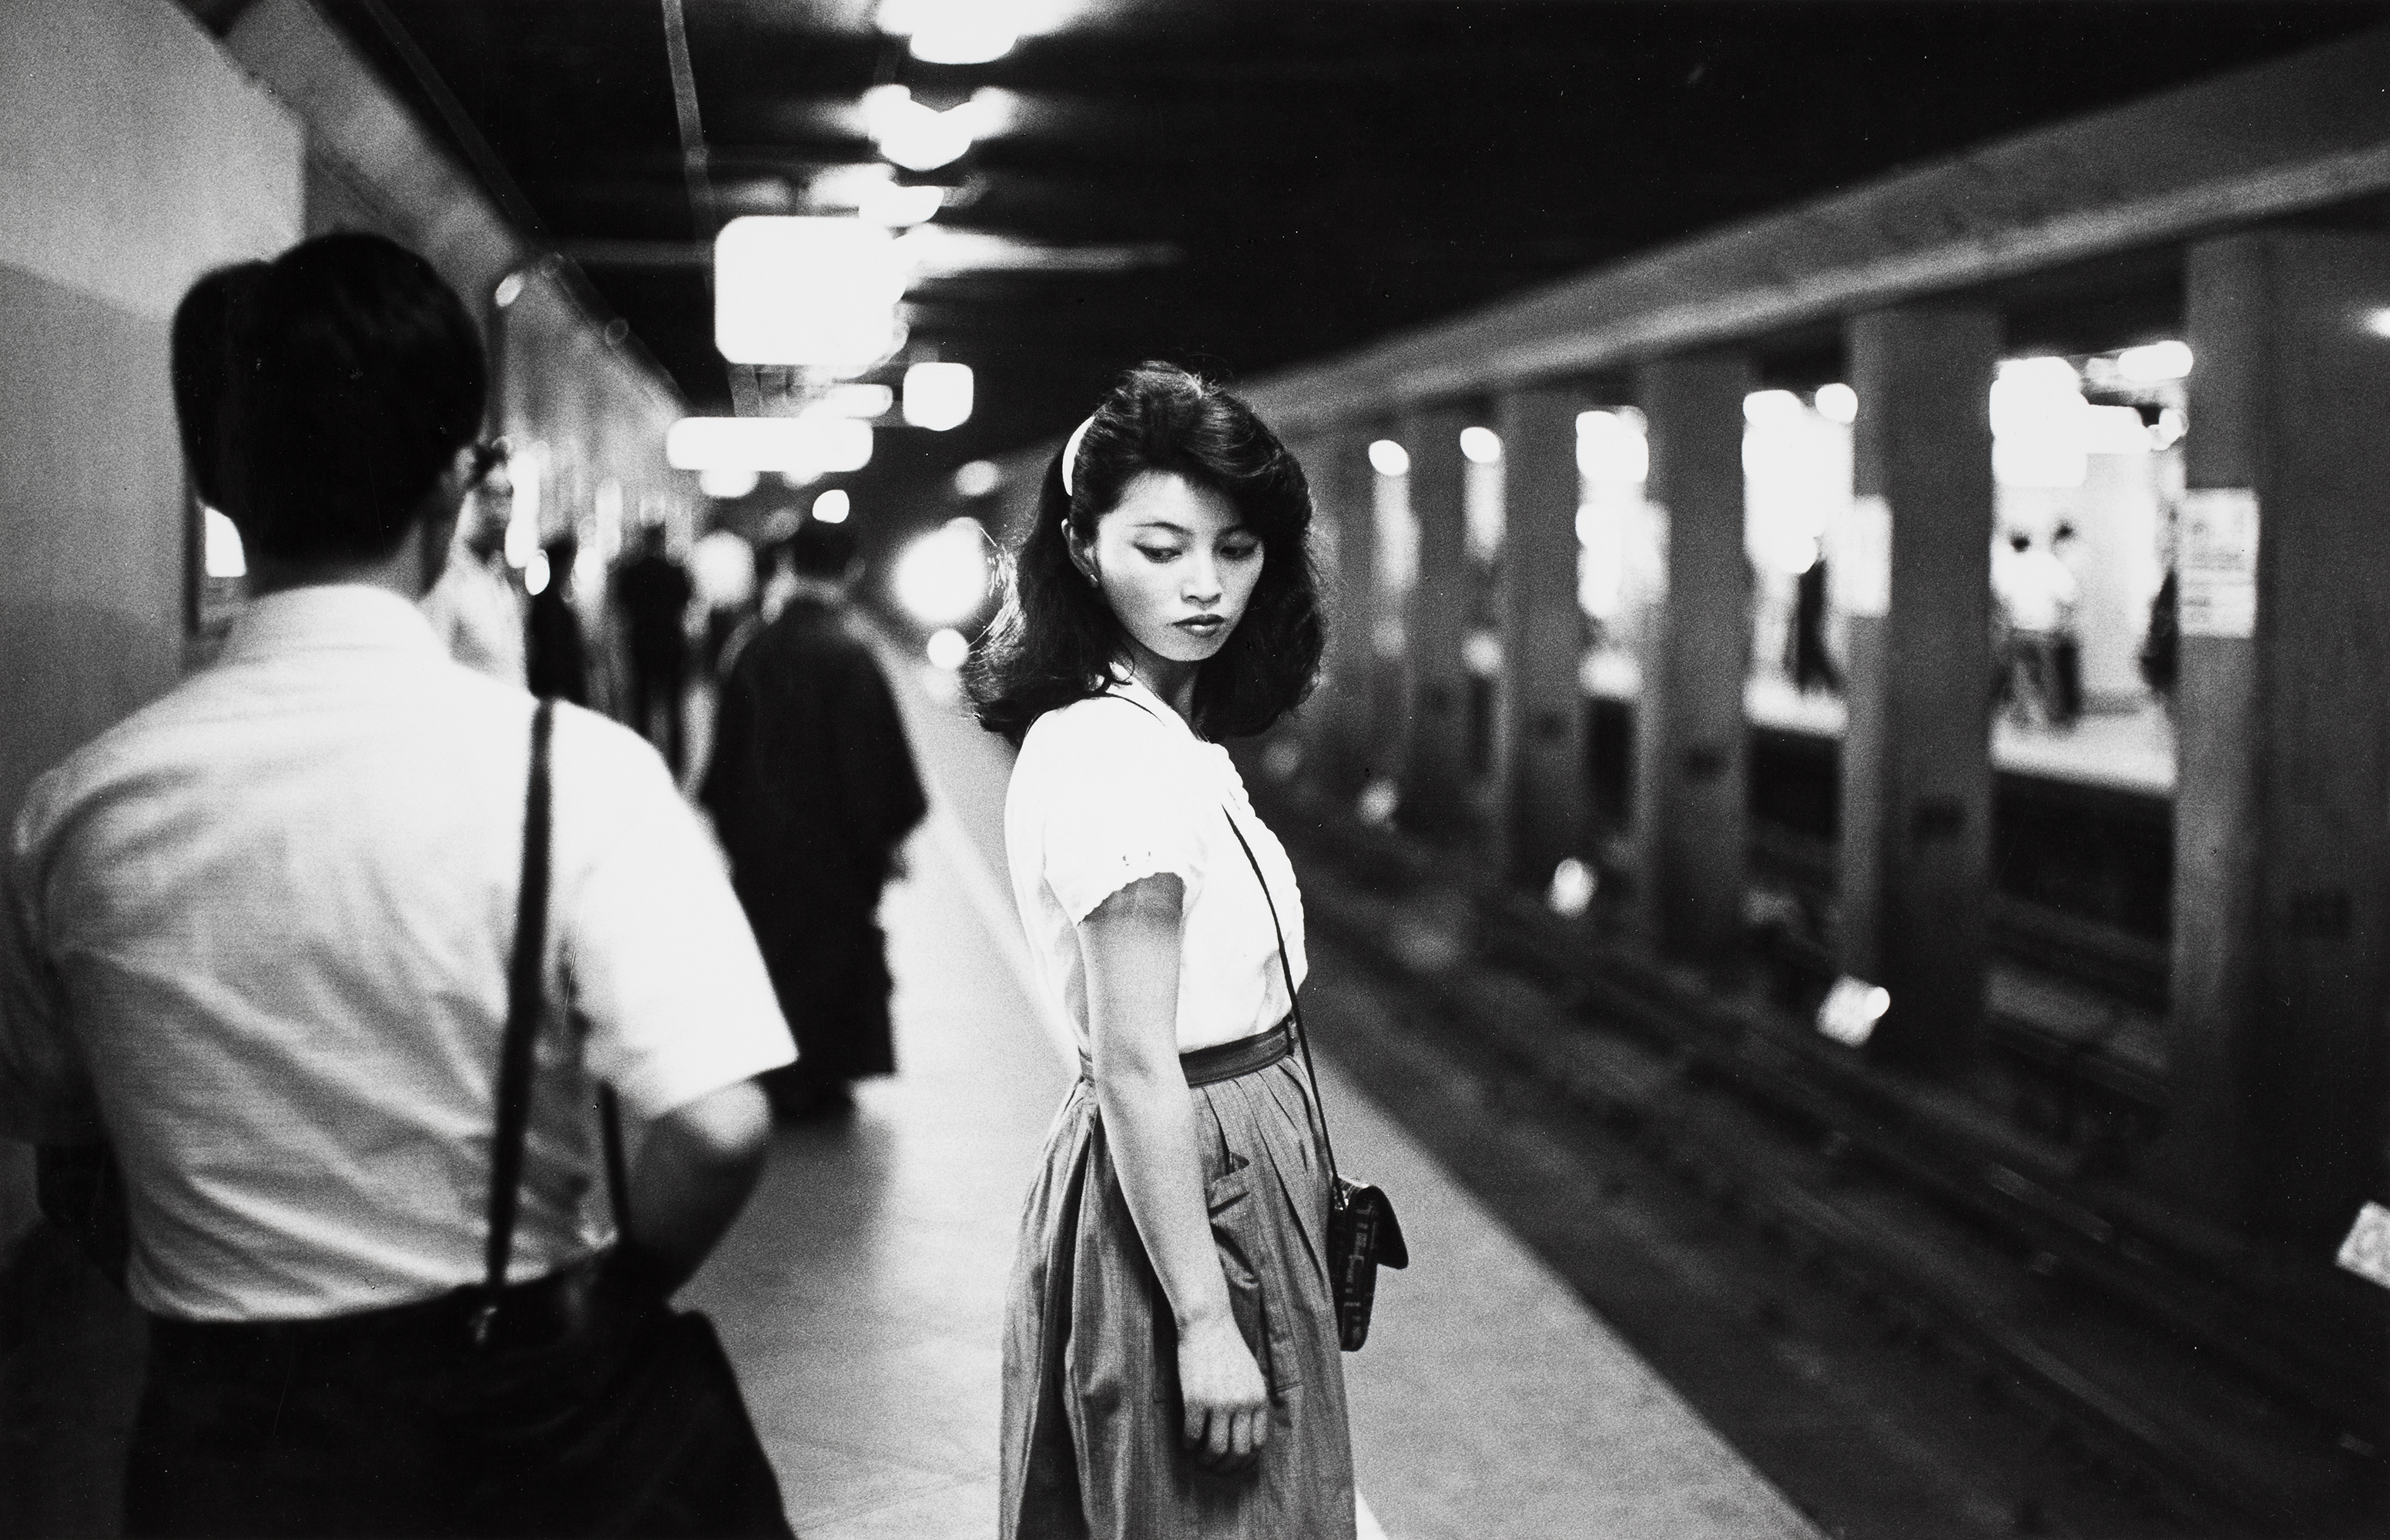 Girl in the subway, Tokyo (1984) by Ed van der Elsken. Nederlands Fotomuseum / © Ed van der Elsken / Collection Stedelijk Museum Amsterdam.